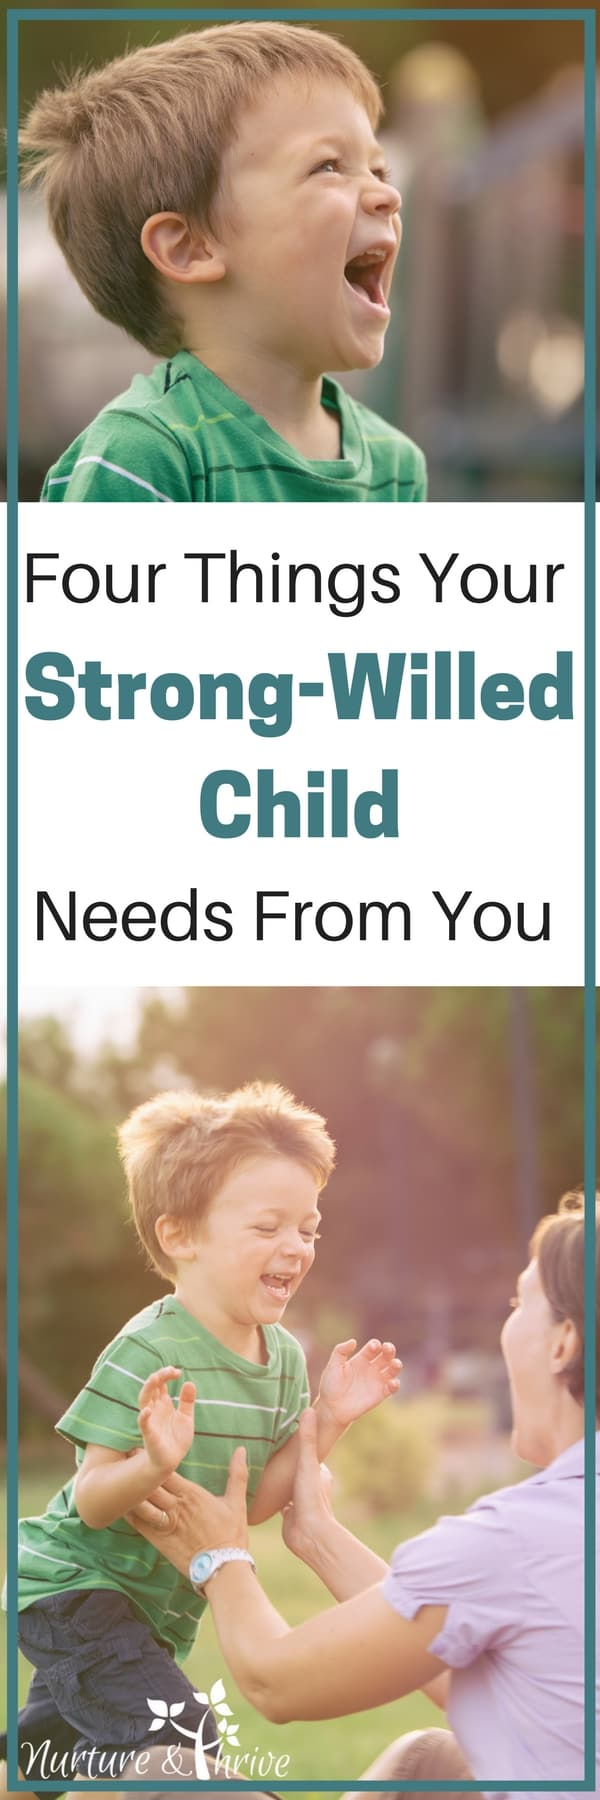 Parenting a strong-willed child is tough, but it also wonderful. This is a temperament style, just like shyness. These tips will help you to recognize their unique strengths and how to help them with their challenges. How to raise a strong-willed child without crushing their spirit. #parenting #strongwilledchild #temperament #positiveparenting #spiritedchild